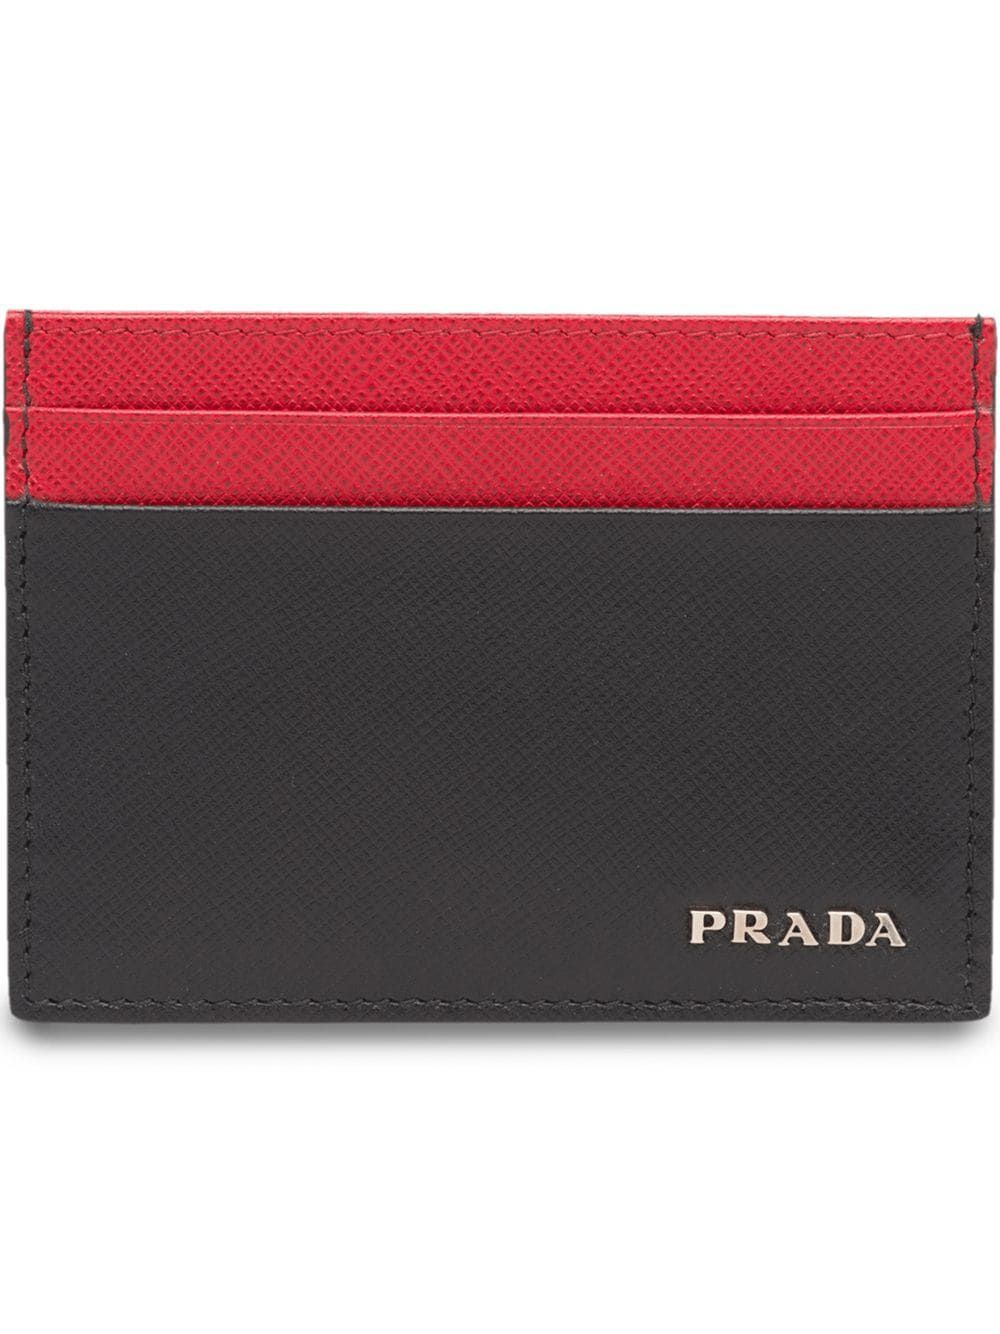 a89f964514fb PRADA PRADA SAFFIANO LEATHER CARD HOLDER - BLACK. #prada | Prada ...